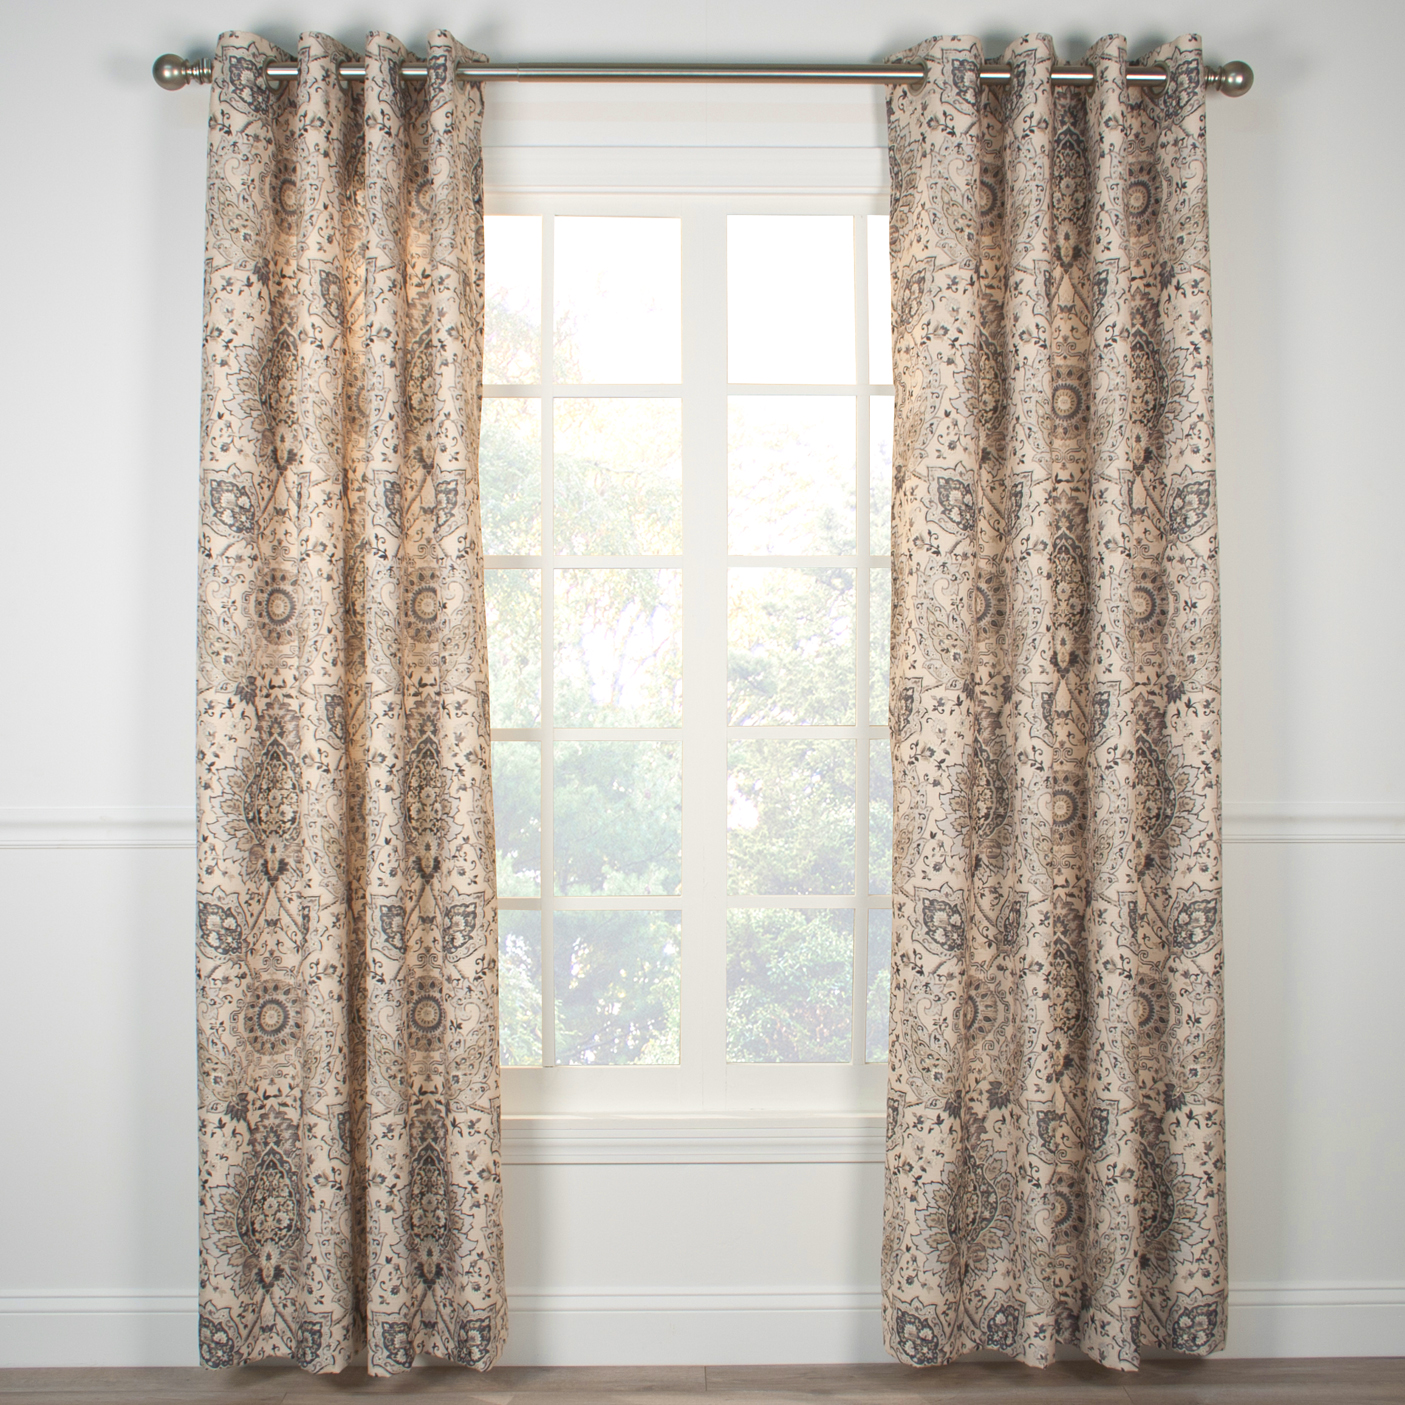 Completely new Indoor & Outdoor Grommet Top Curtains and Panels - TheCurtainShop.com GD71